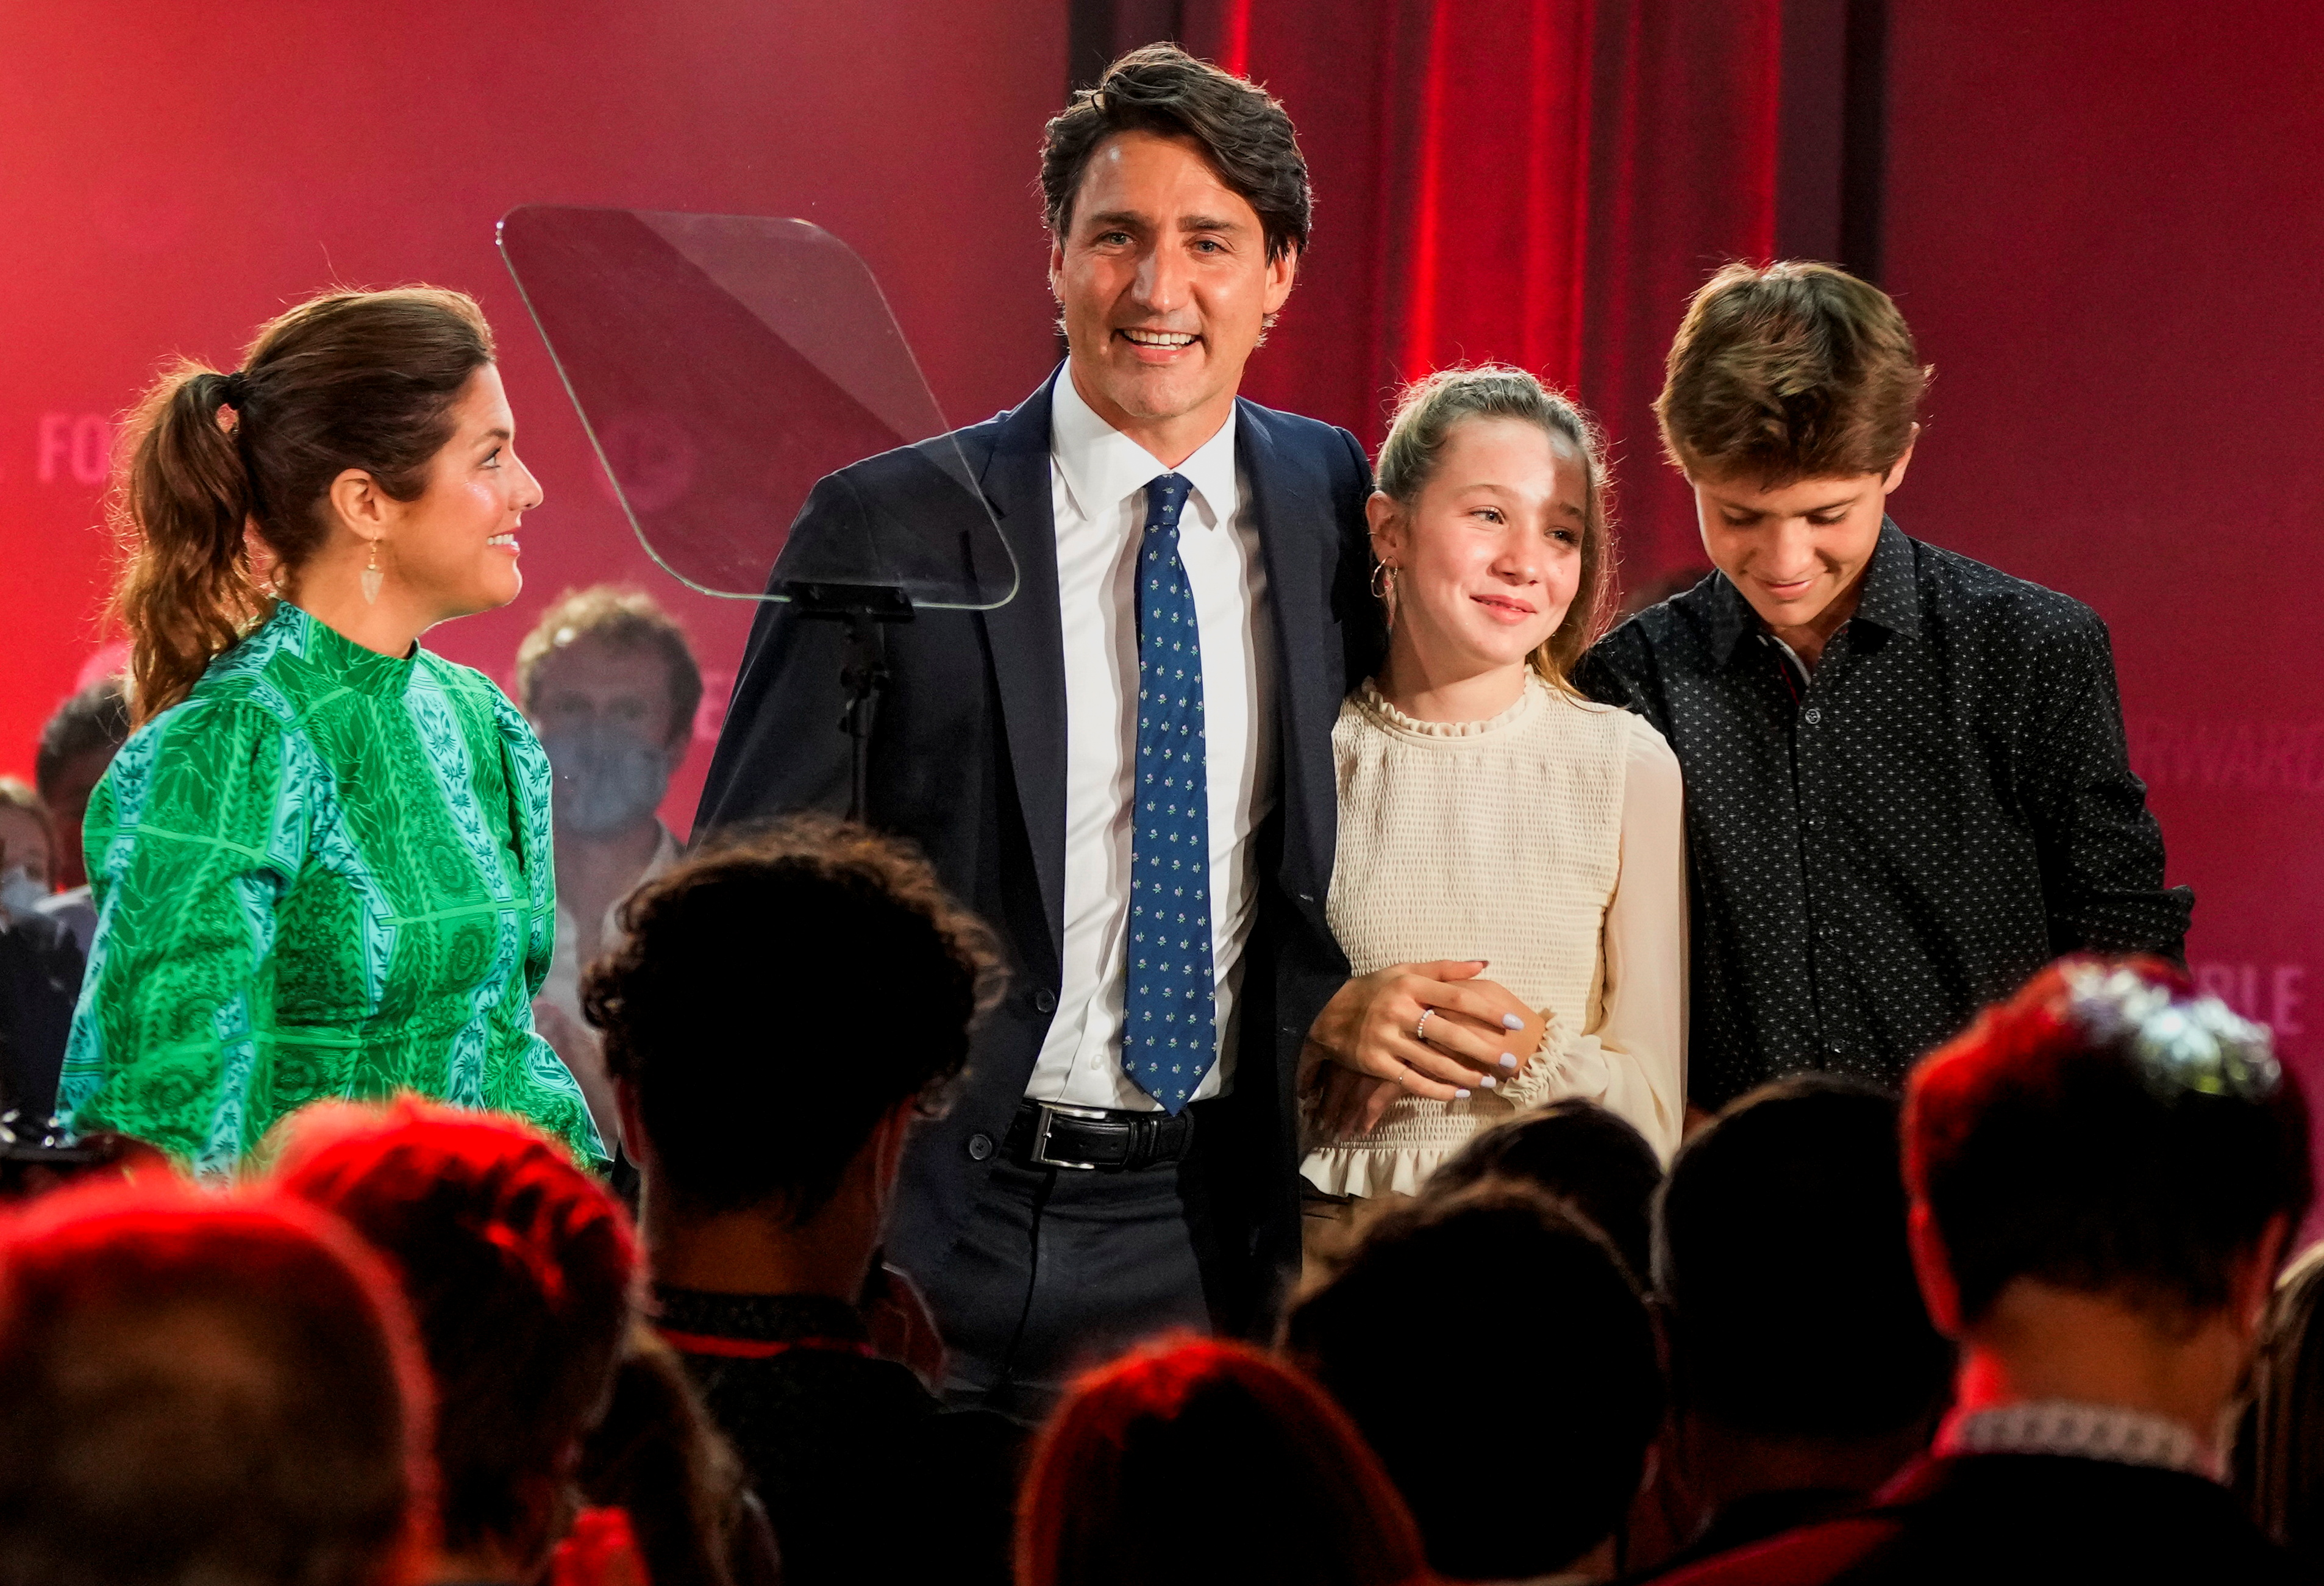 Canada's Liberal Prime Minister Justin Trudeau, accompanied by his wife Sophie Gregoire and their children Ella-Grace and Xavier, reacts during the Liberal election night party in Montreal, Quebec, Canada, September 21, 2021. REUTERS/Carlos Osorio